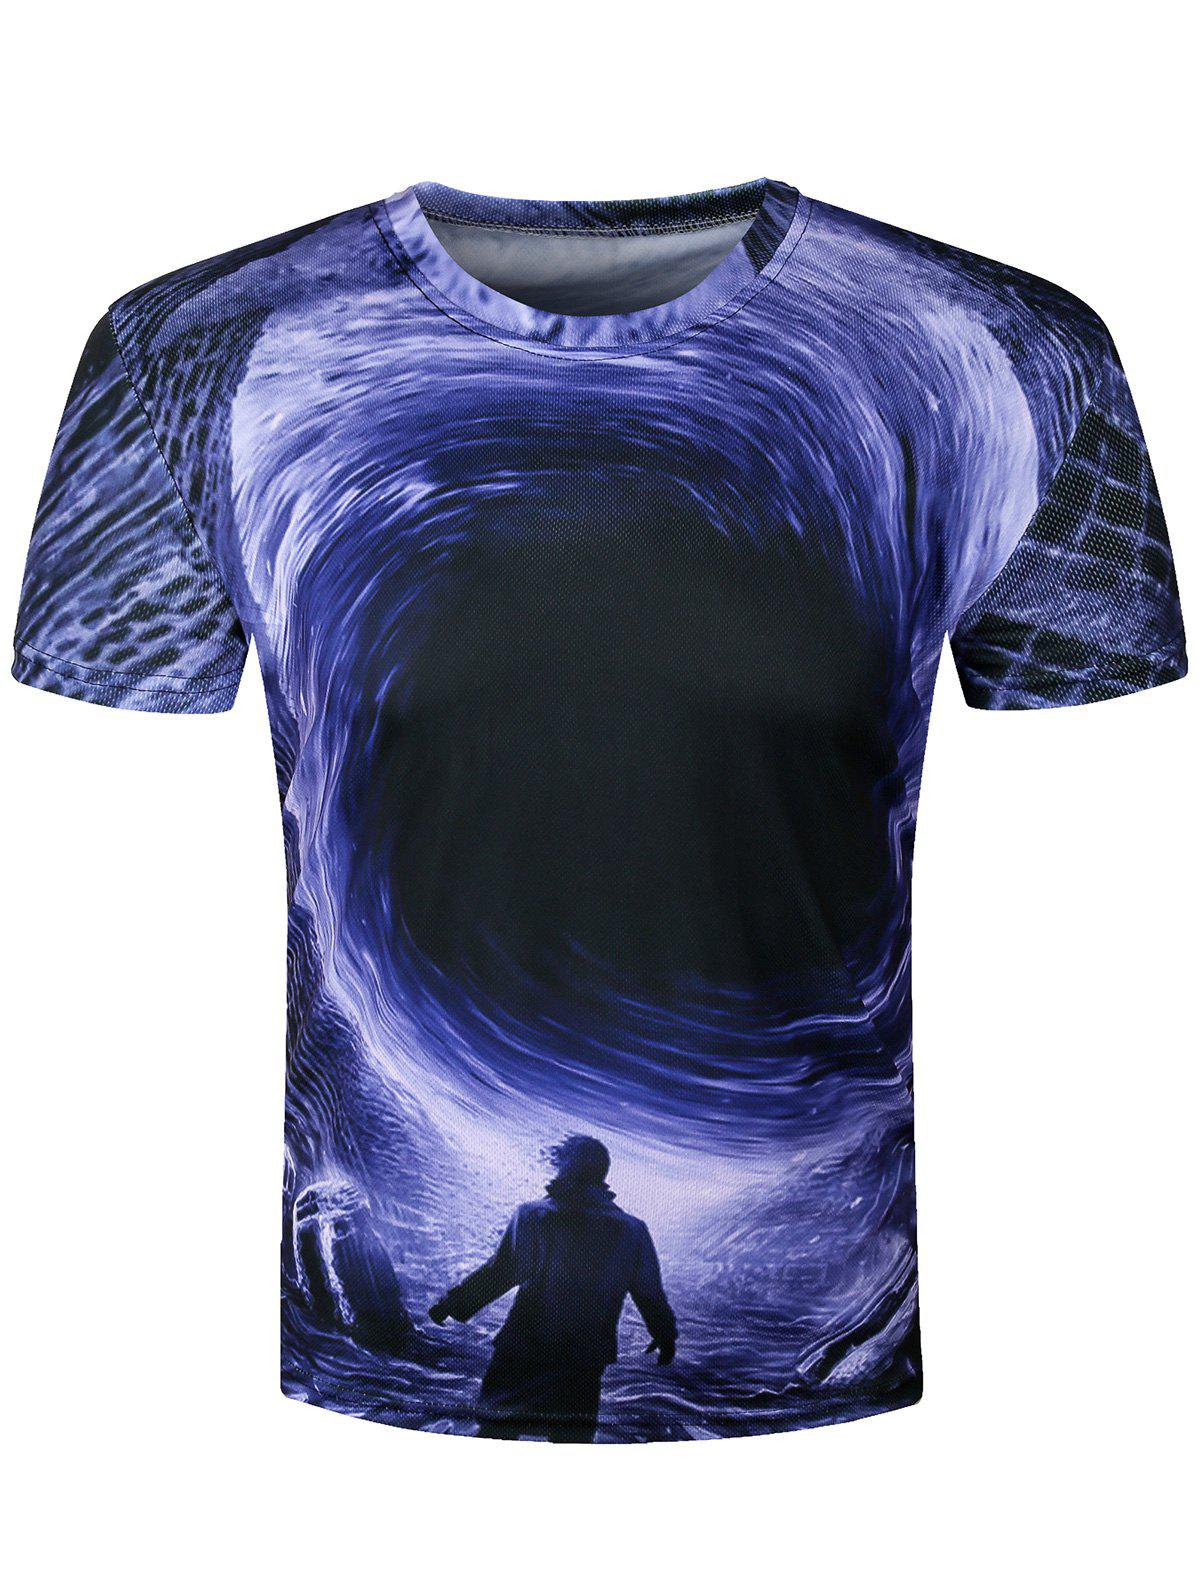 3D Disaster Eddy Hole Printed Crew Neck T-Shirt - BLUE M